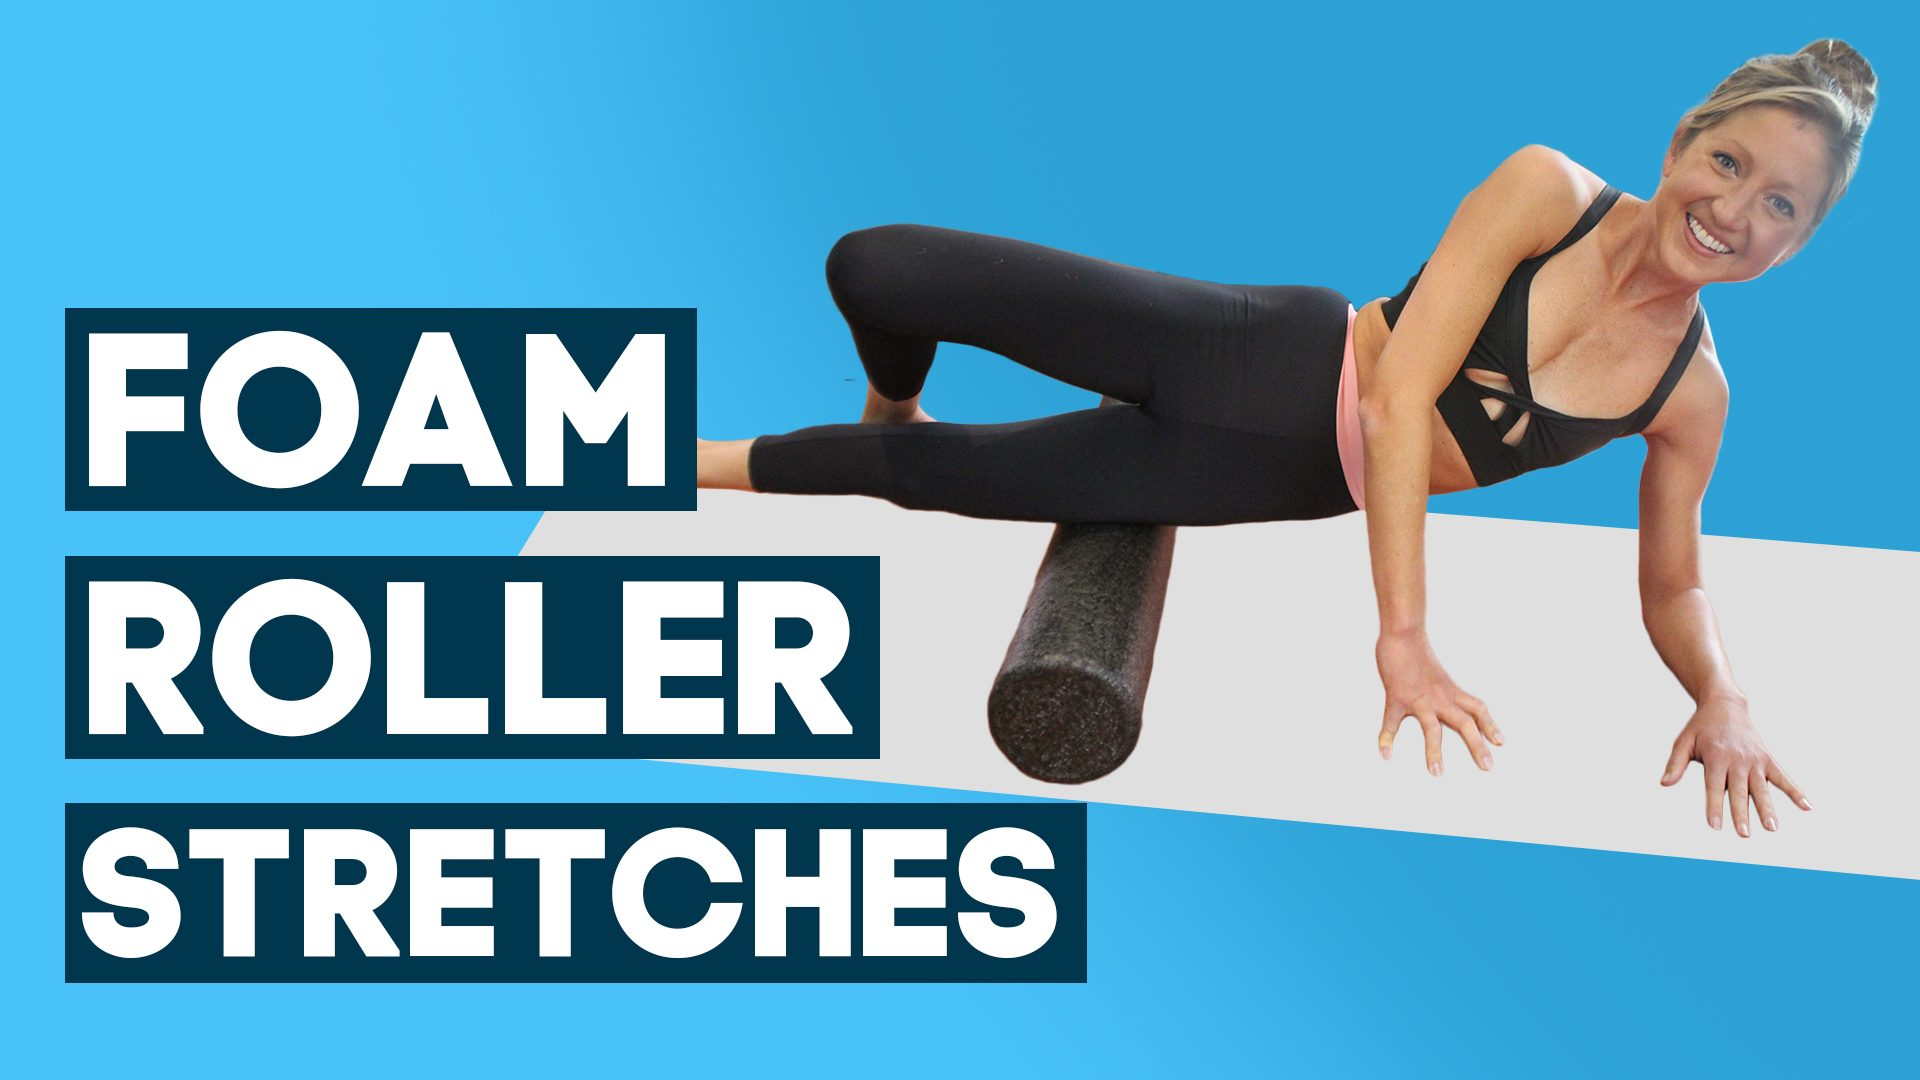 Foam roller stretches